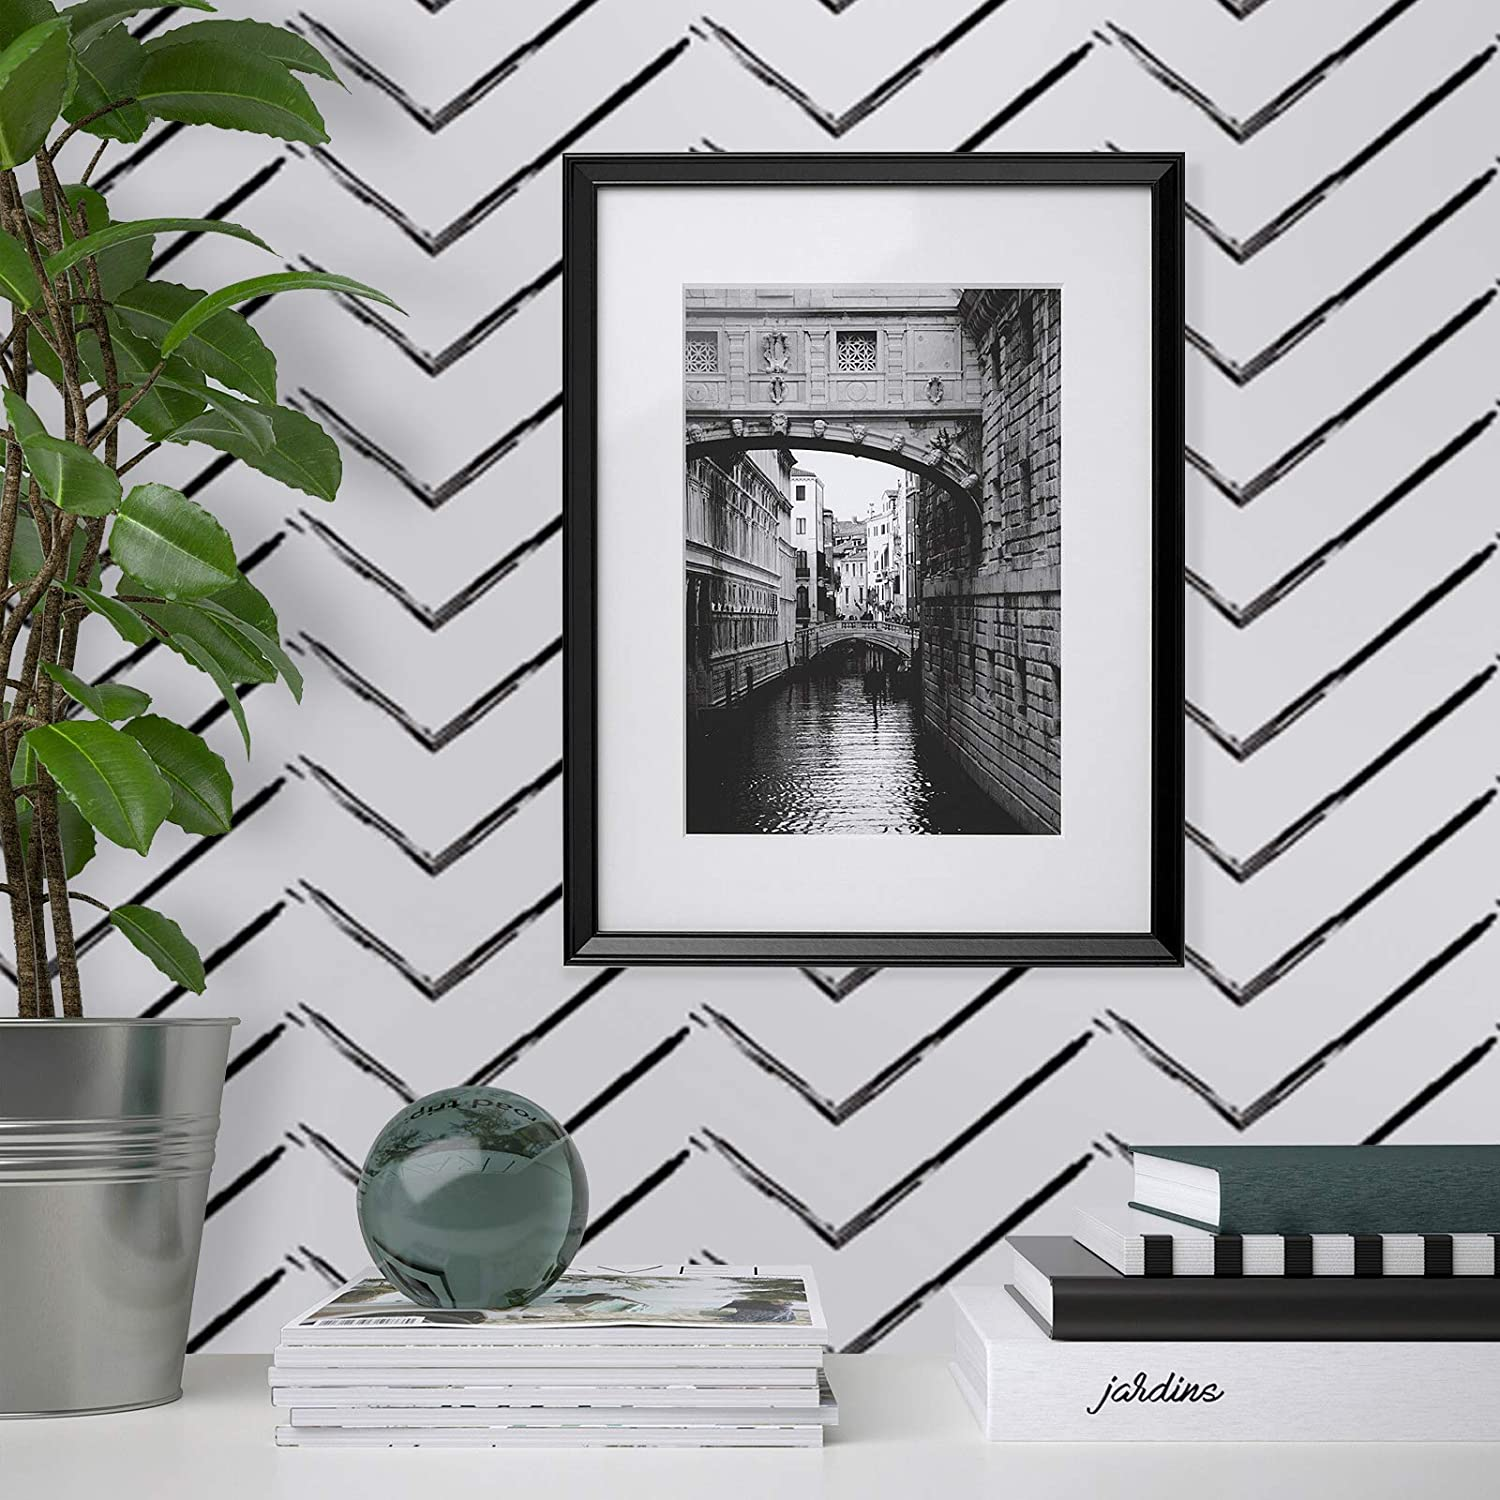 Sticky Back Plastic Roll Self Adhesive Wallpaper Modern White Paper Black Stripe 45cm /× 300cm Waterproof Matte Textured Peel and Stick Furniture Sticker for Bedroom Shelf Liner Table Wall DIY